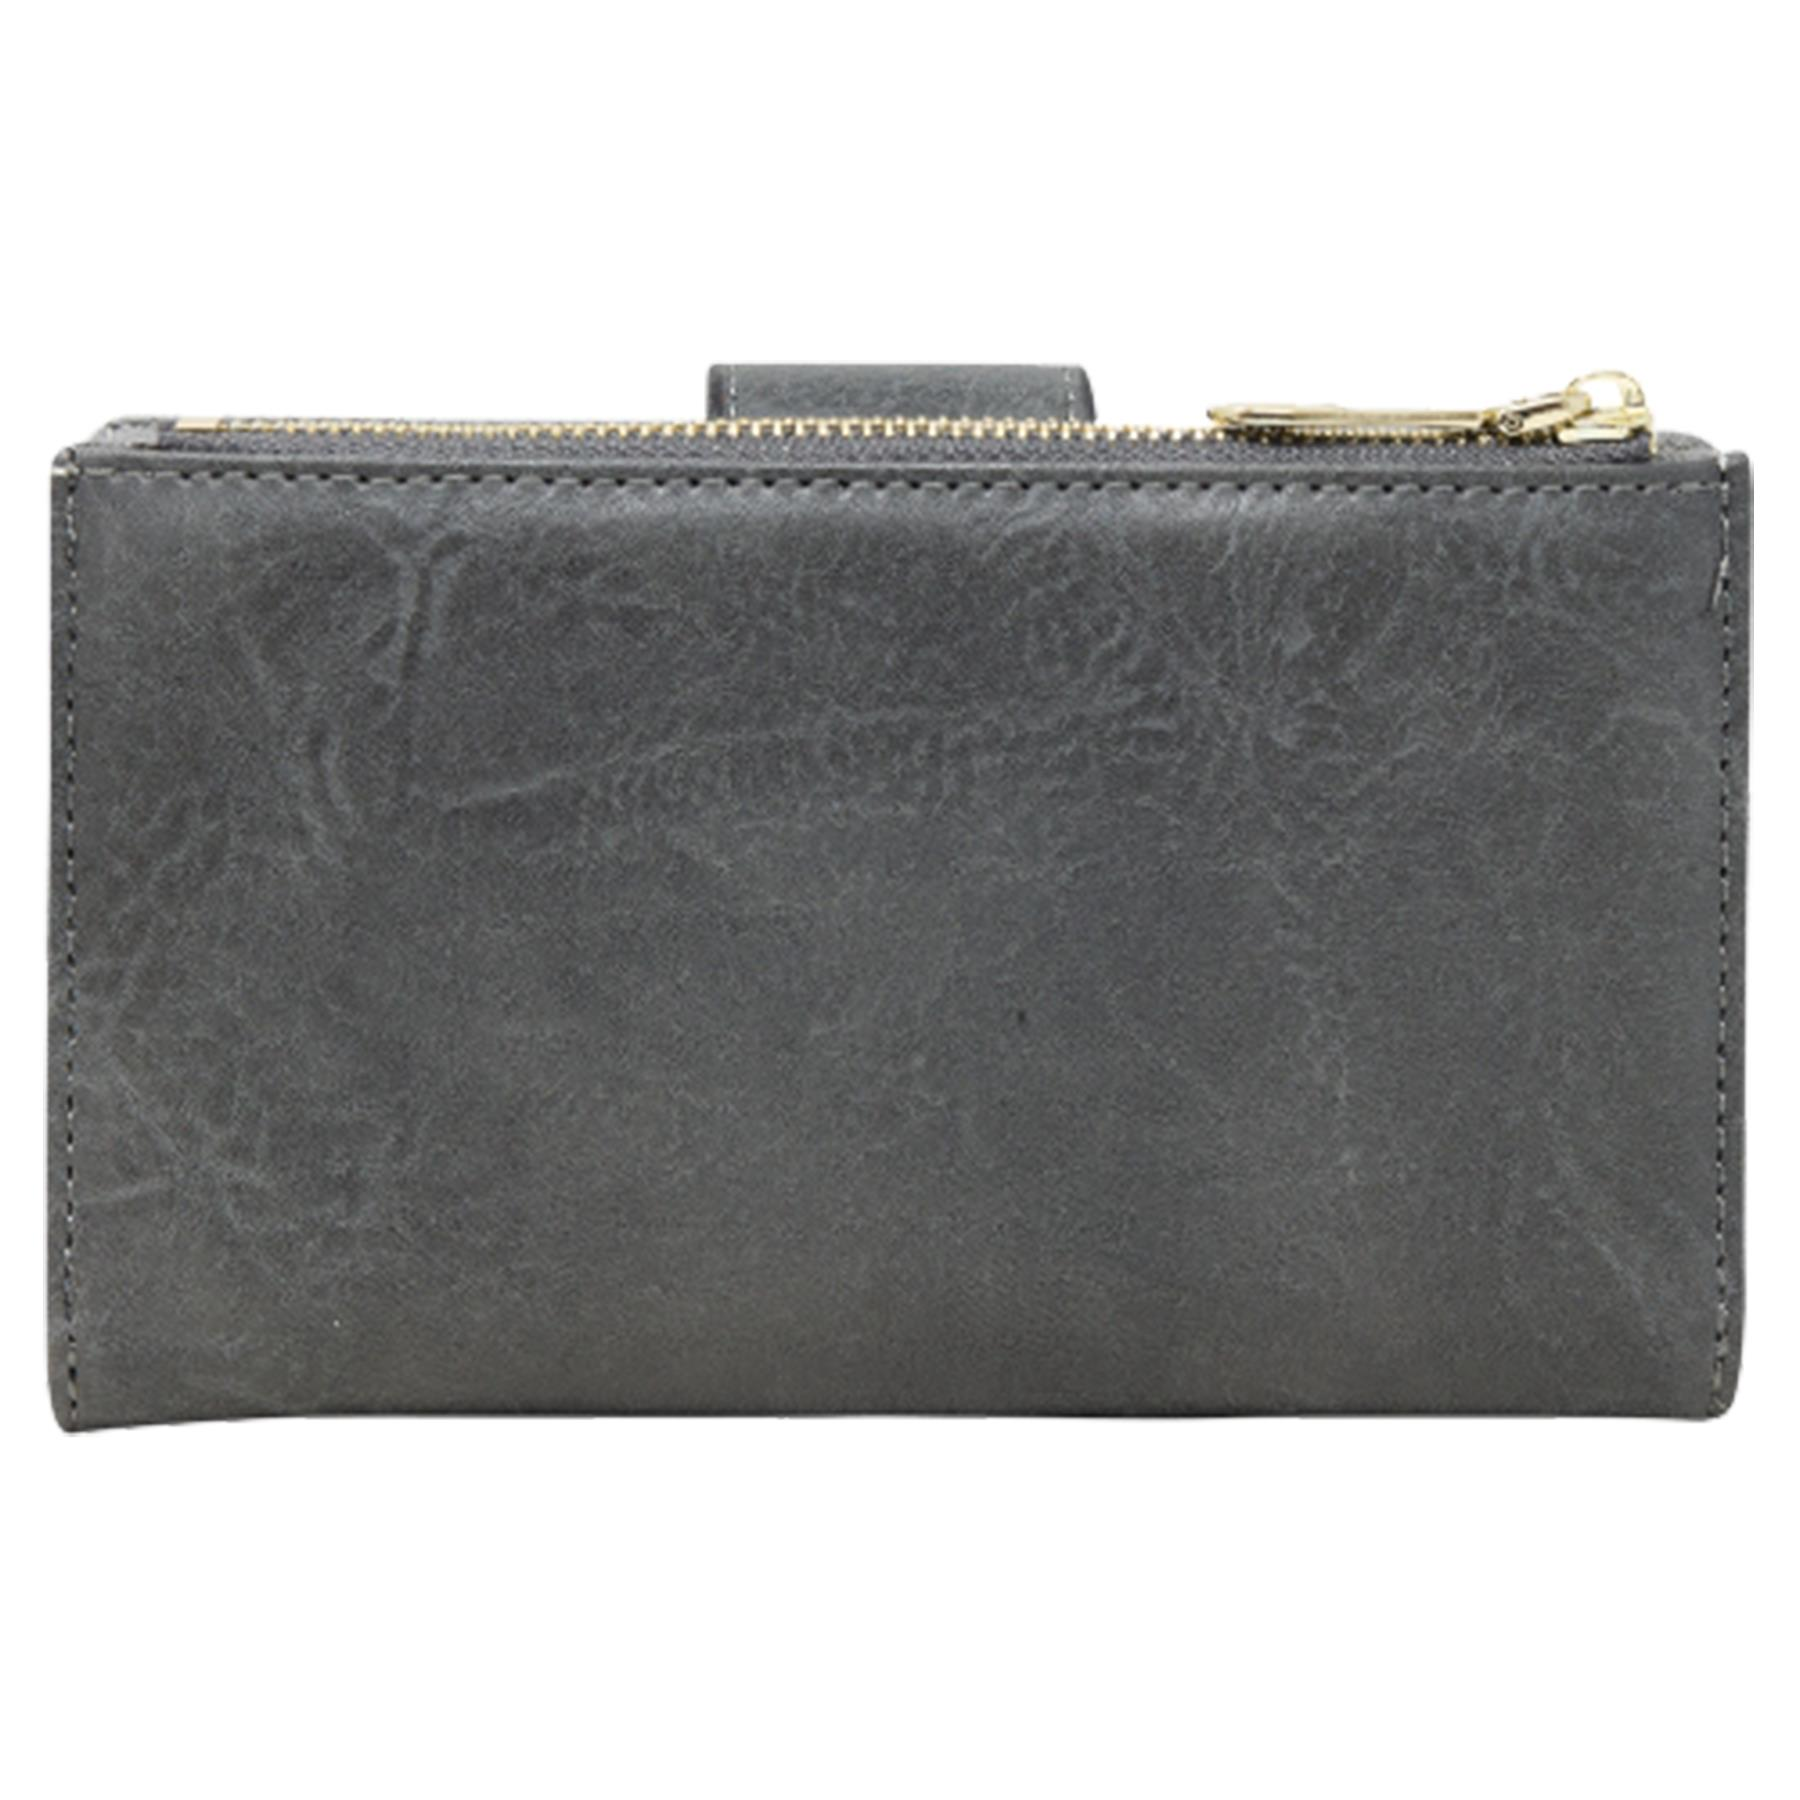 New-Soft-Plain-Synthetic-Leather-Card-Organiser-Ladies-Long-Purse thumbnail 16